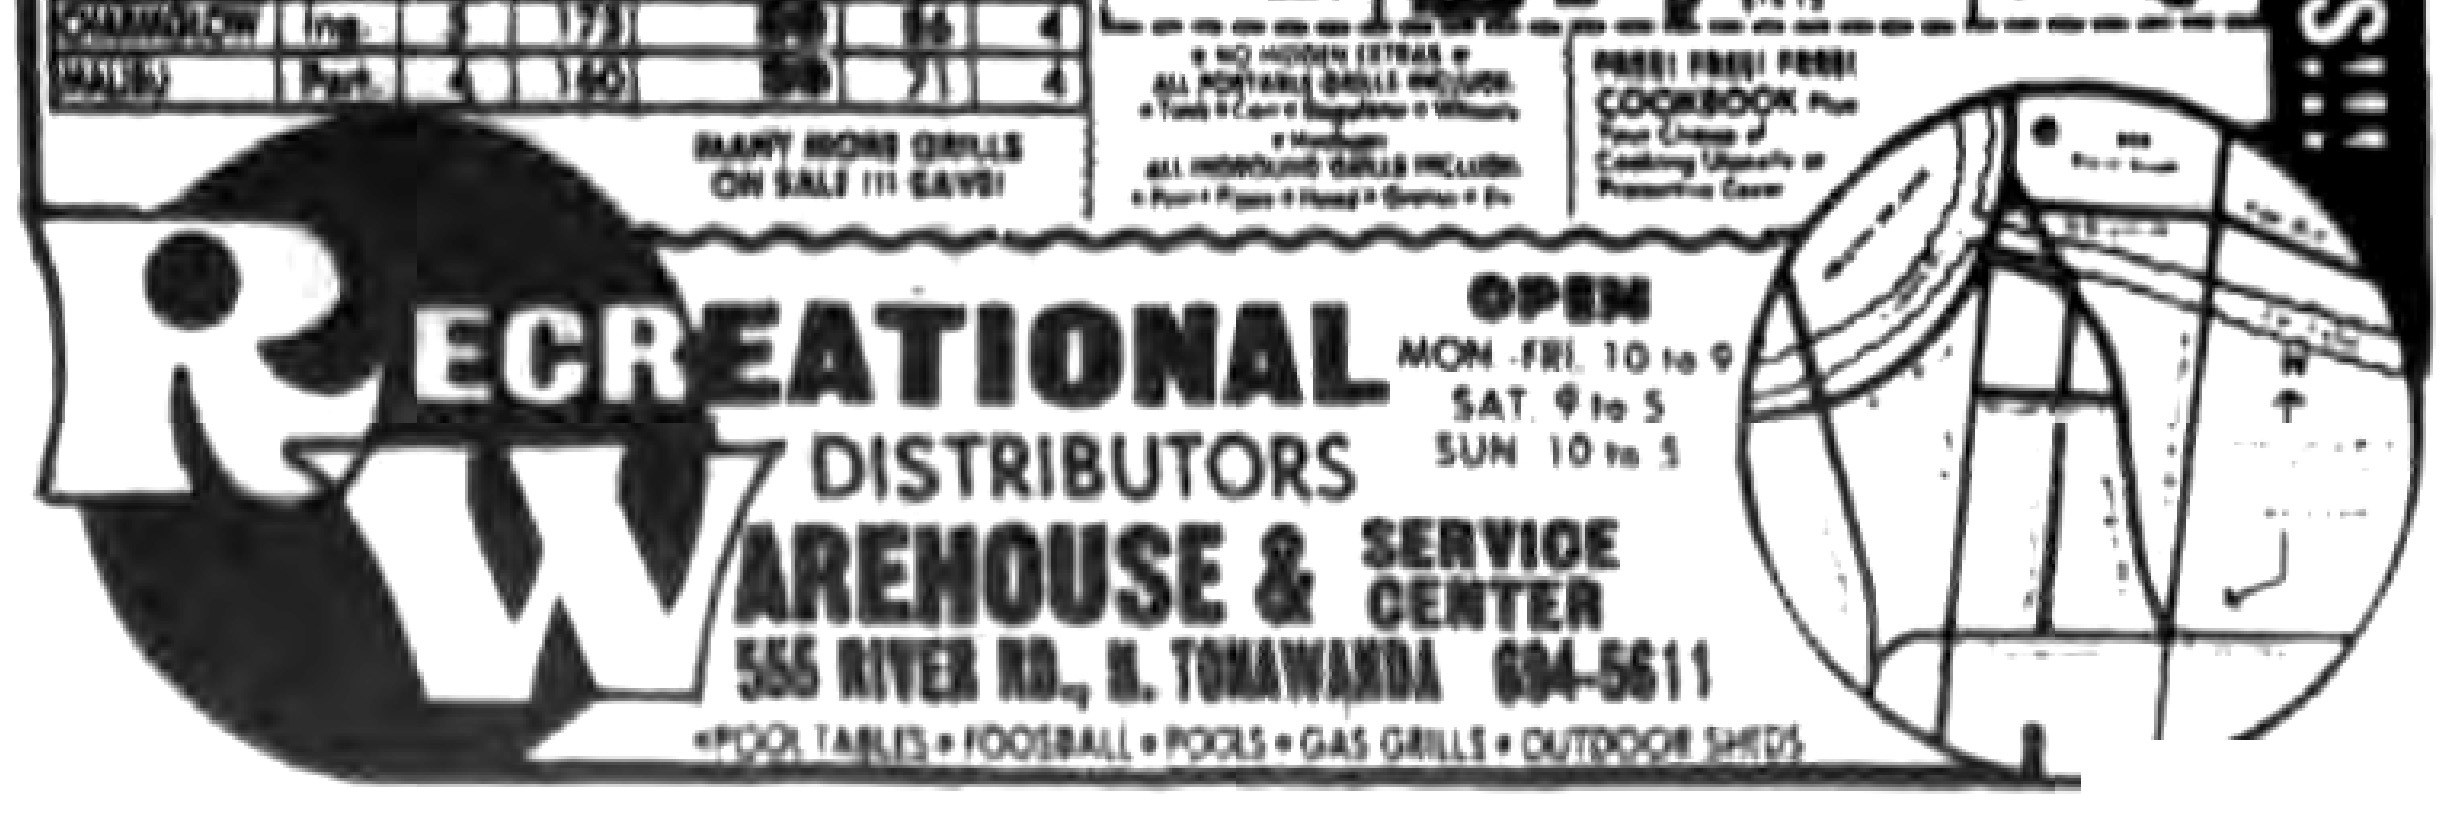 Recreational Warehouse logotype from ad (1977).jpg